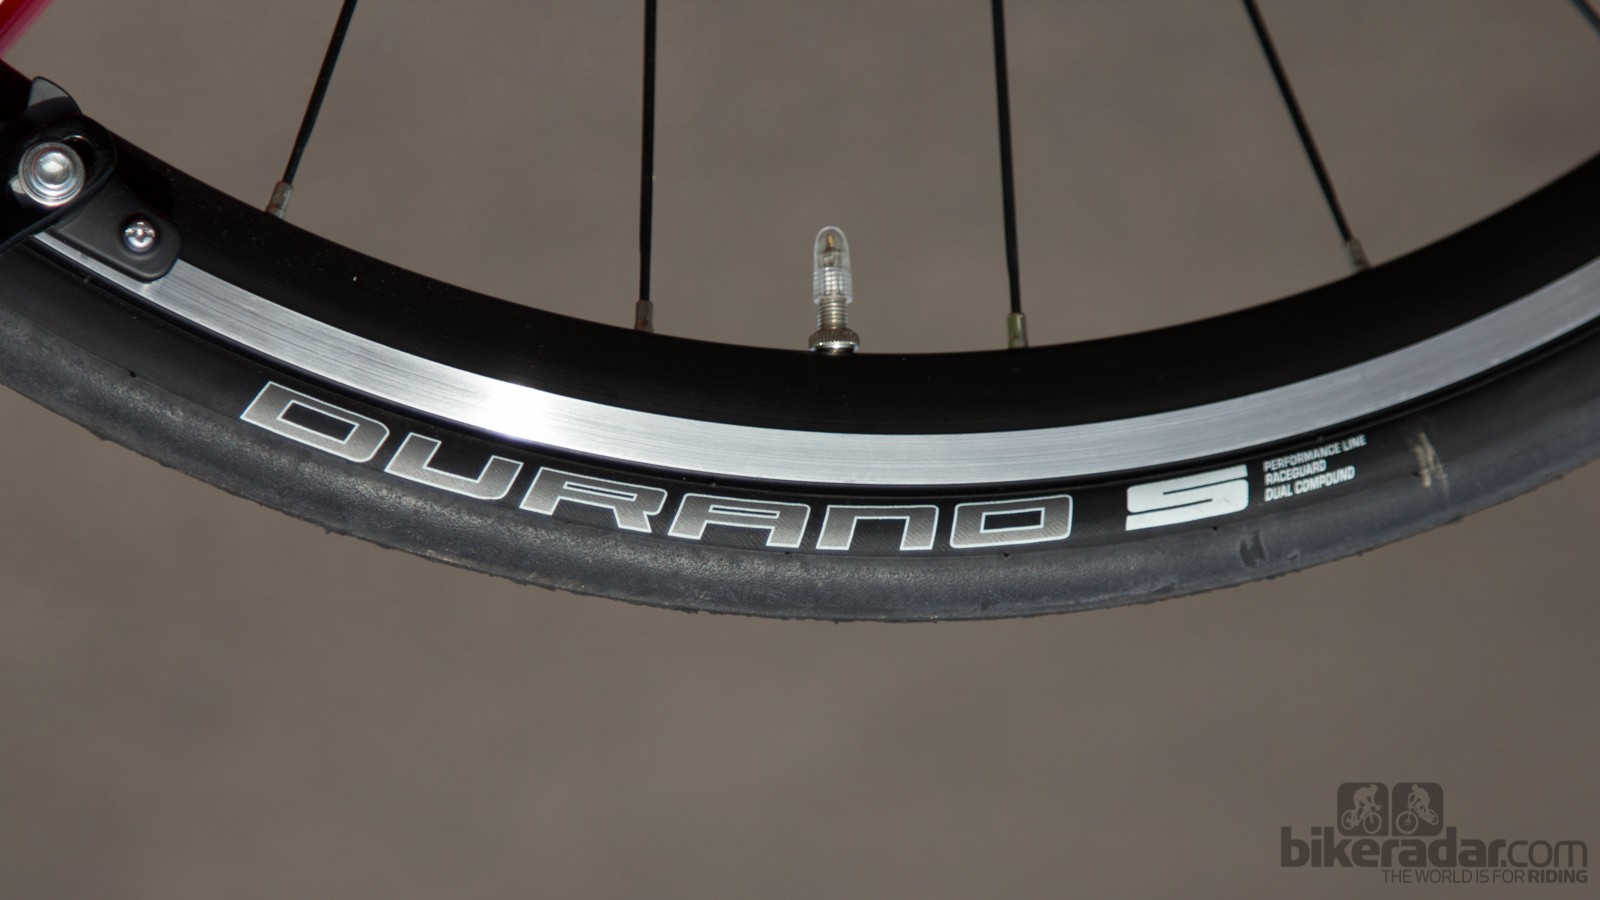 These Schwalbe Durano tyres are a favorite of BikeRadar's